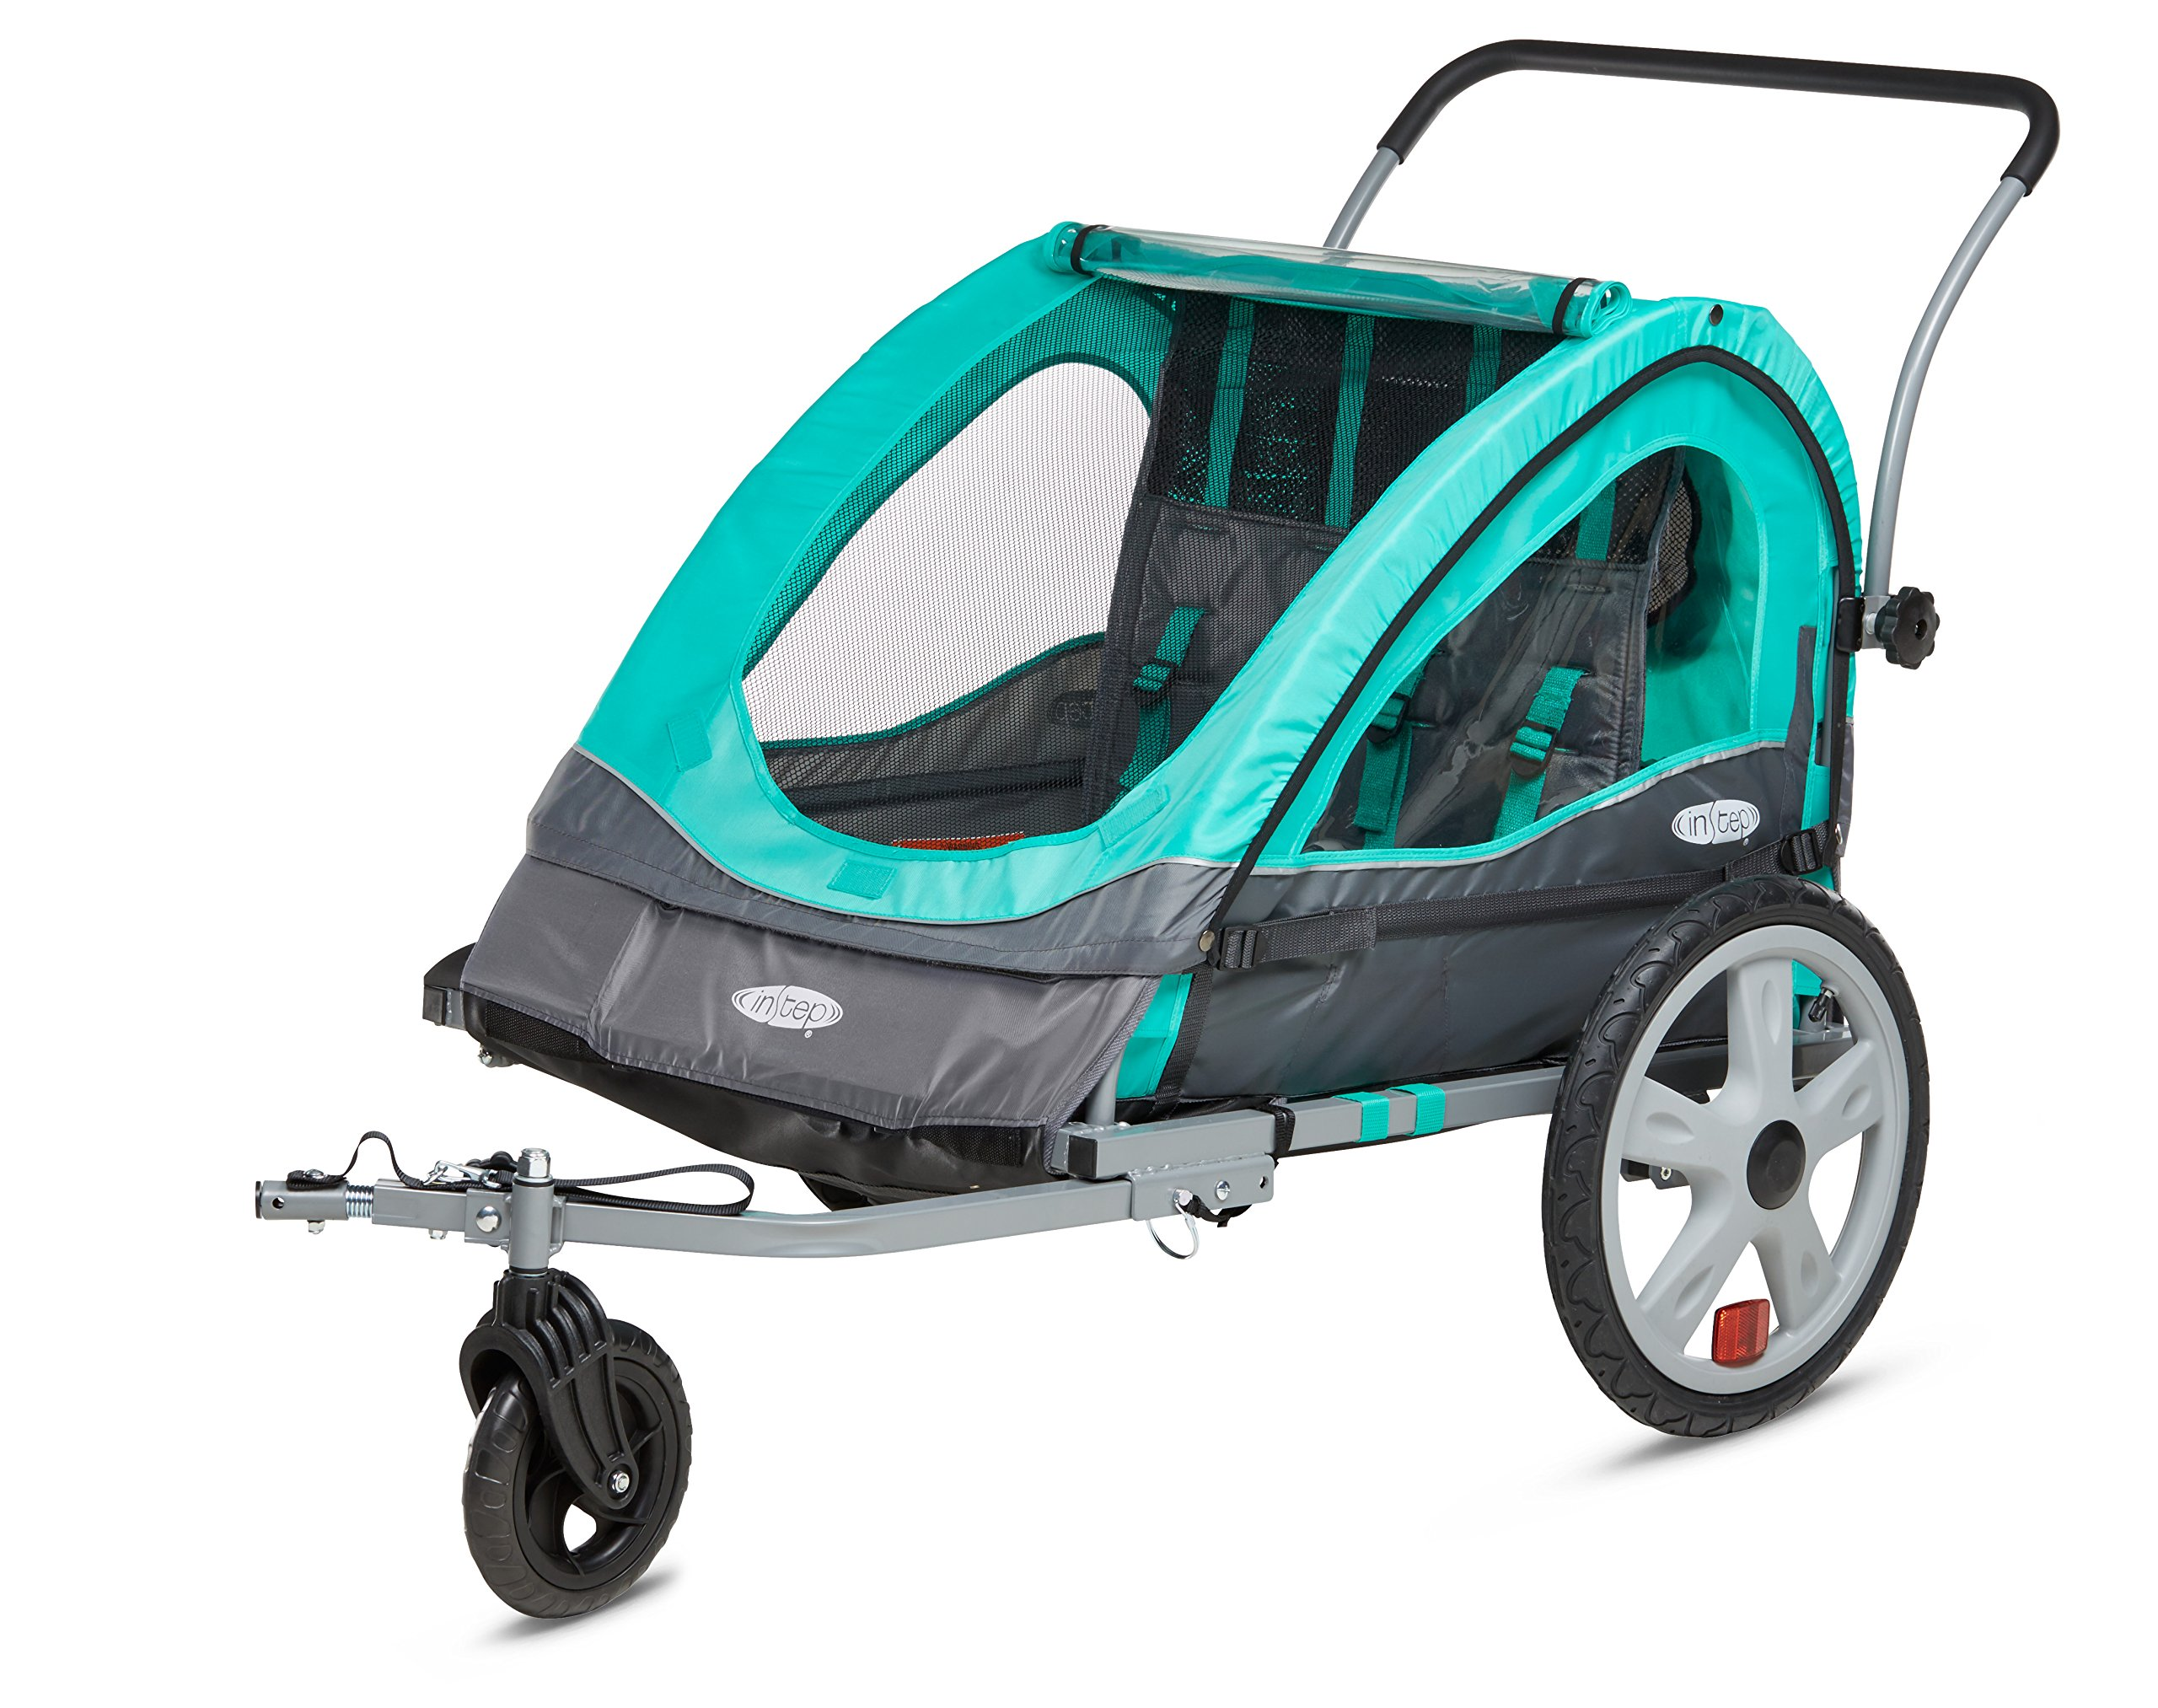 InStep Quick-N-EZ Double Seat Foldable Tow Behind Bike Trailers, Converts to Stroller/Jogger, Featuring 2-in-1 Canopy and 16-Inch Wheels, for Kids and Children, Teal by Instep